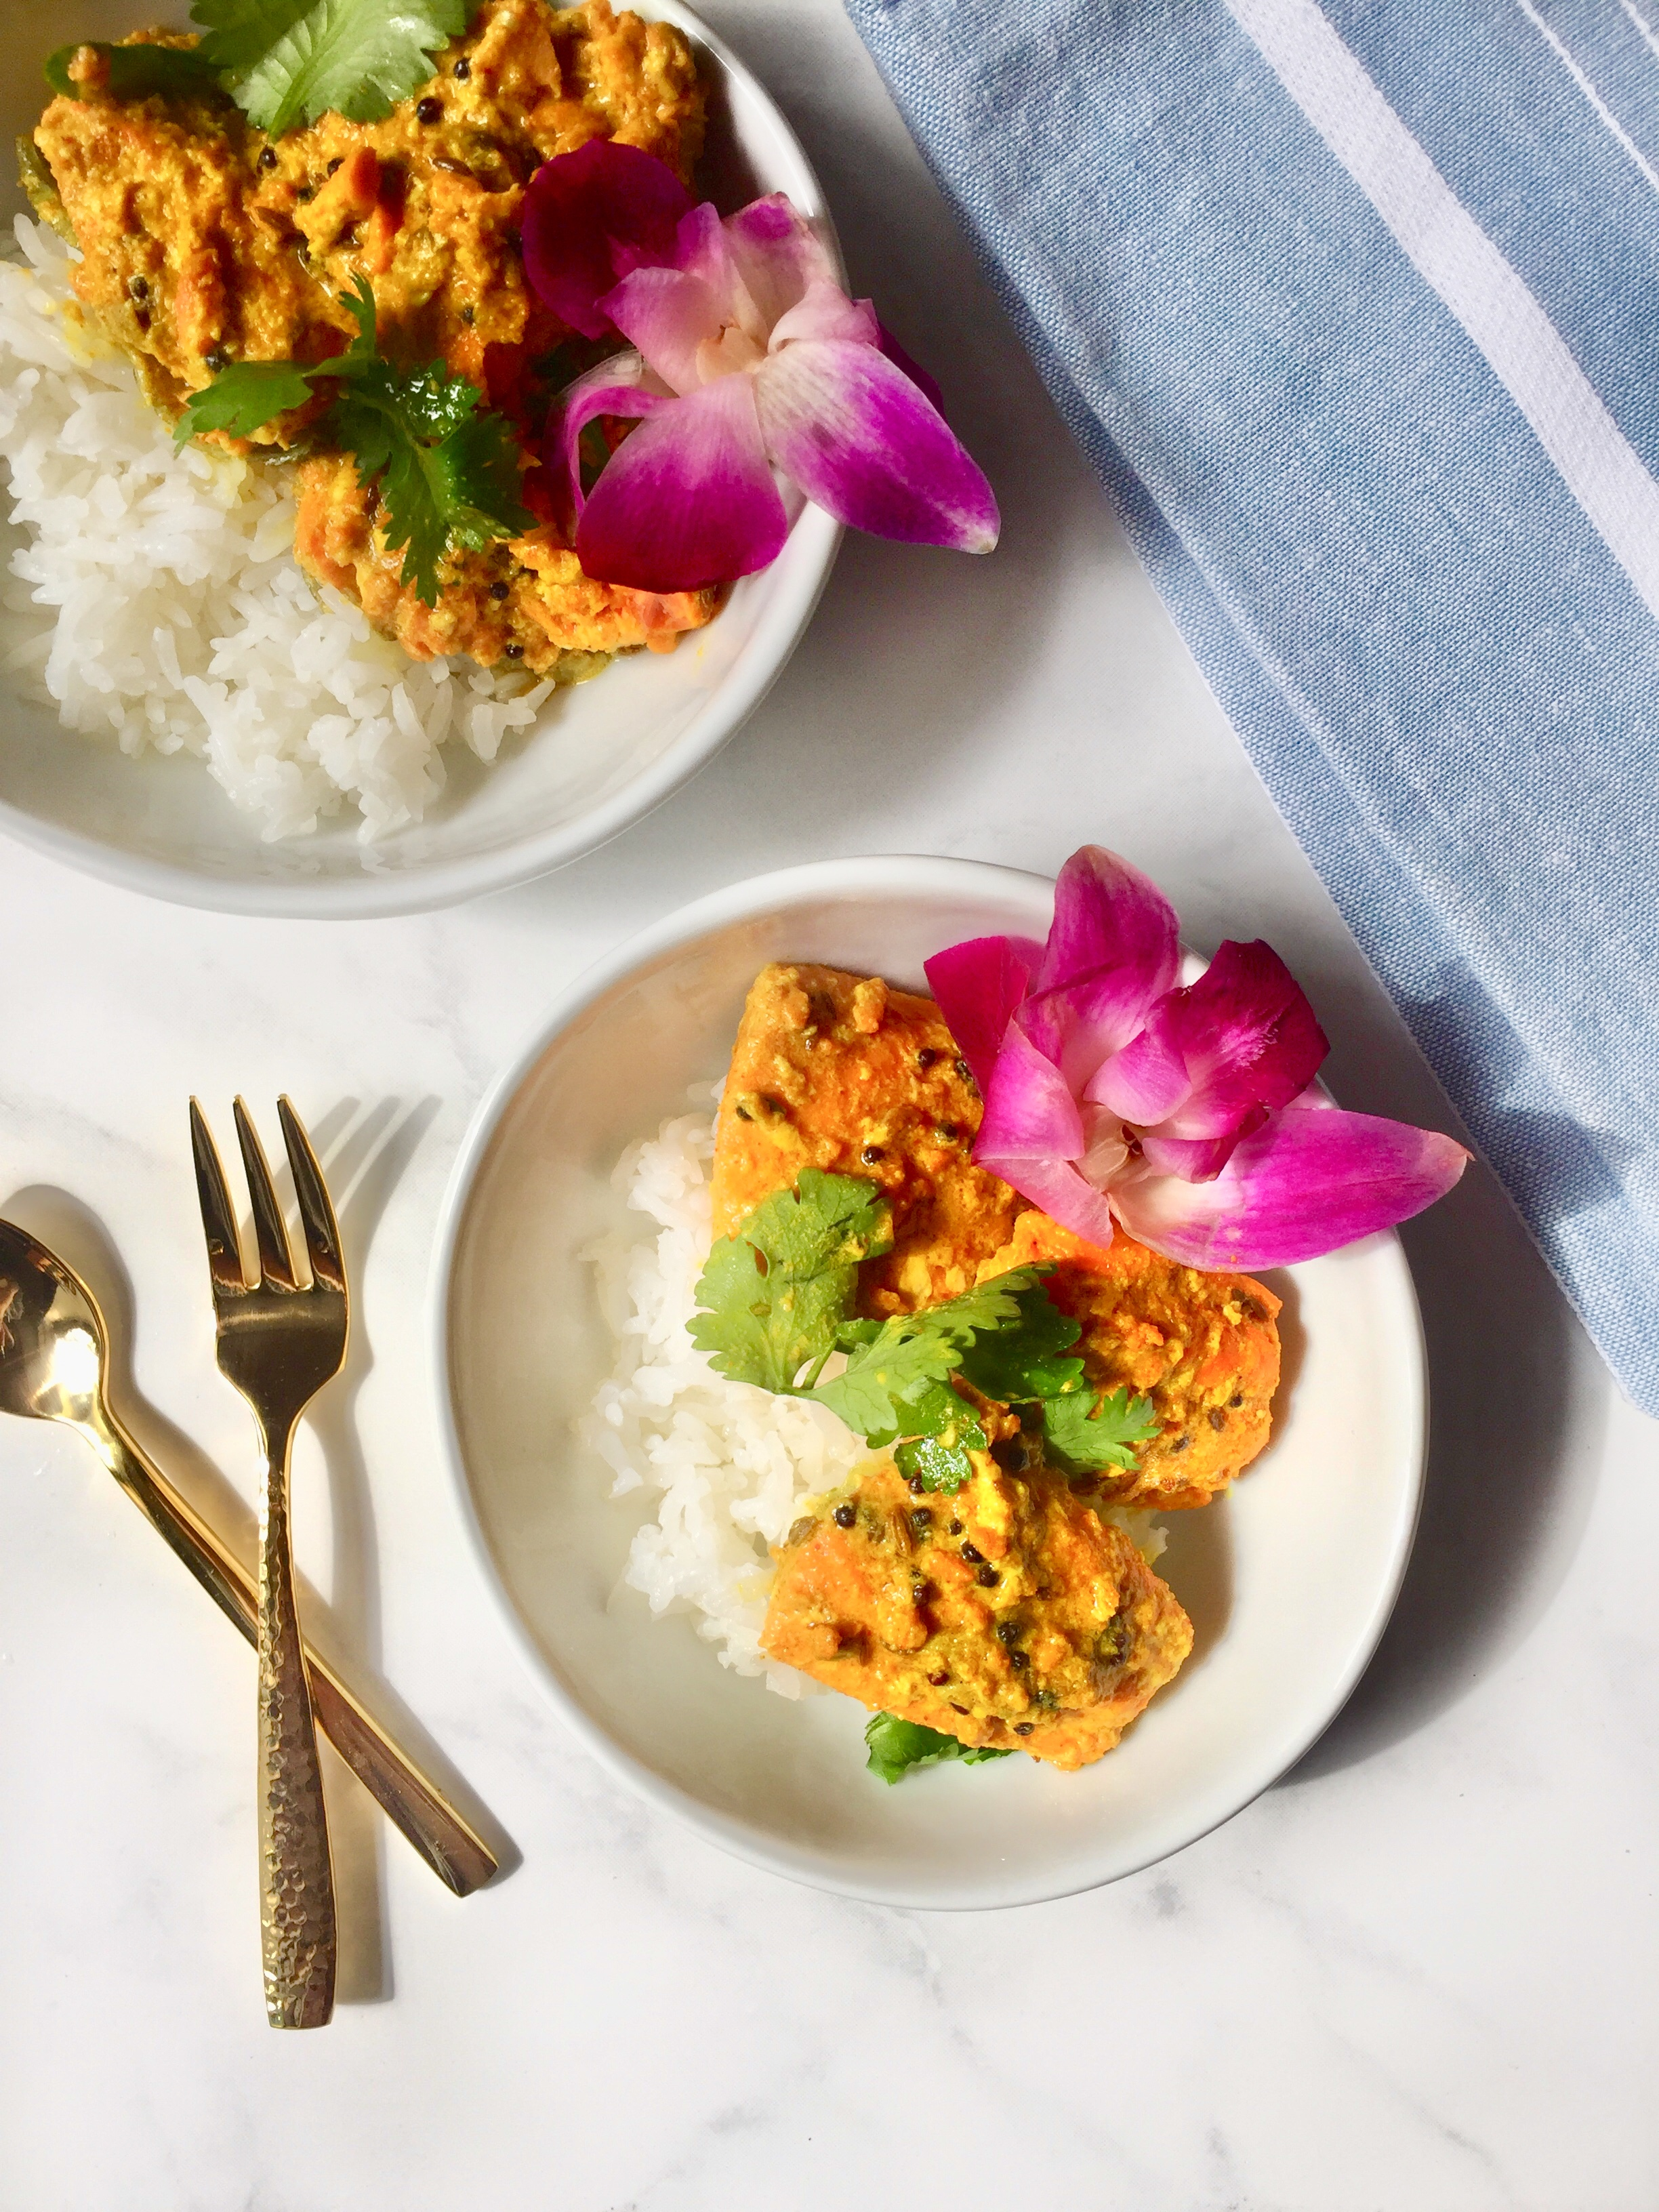 spicy bengali salmon with a golden turmeric & mustard seed sauce (shorshe jhol)